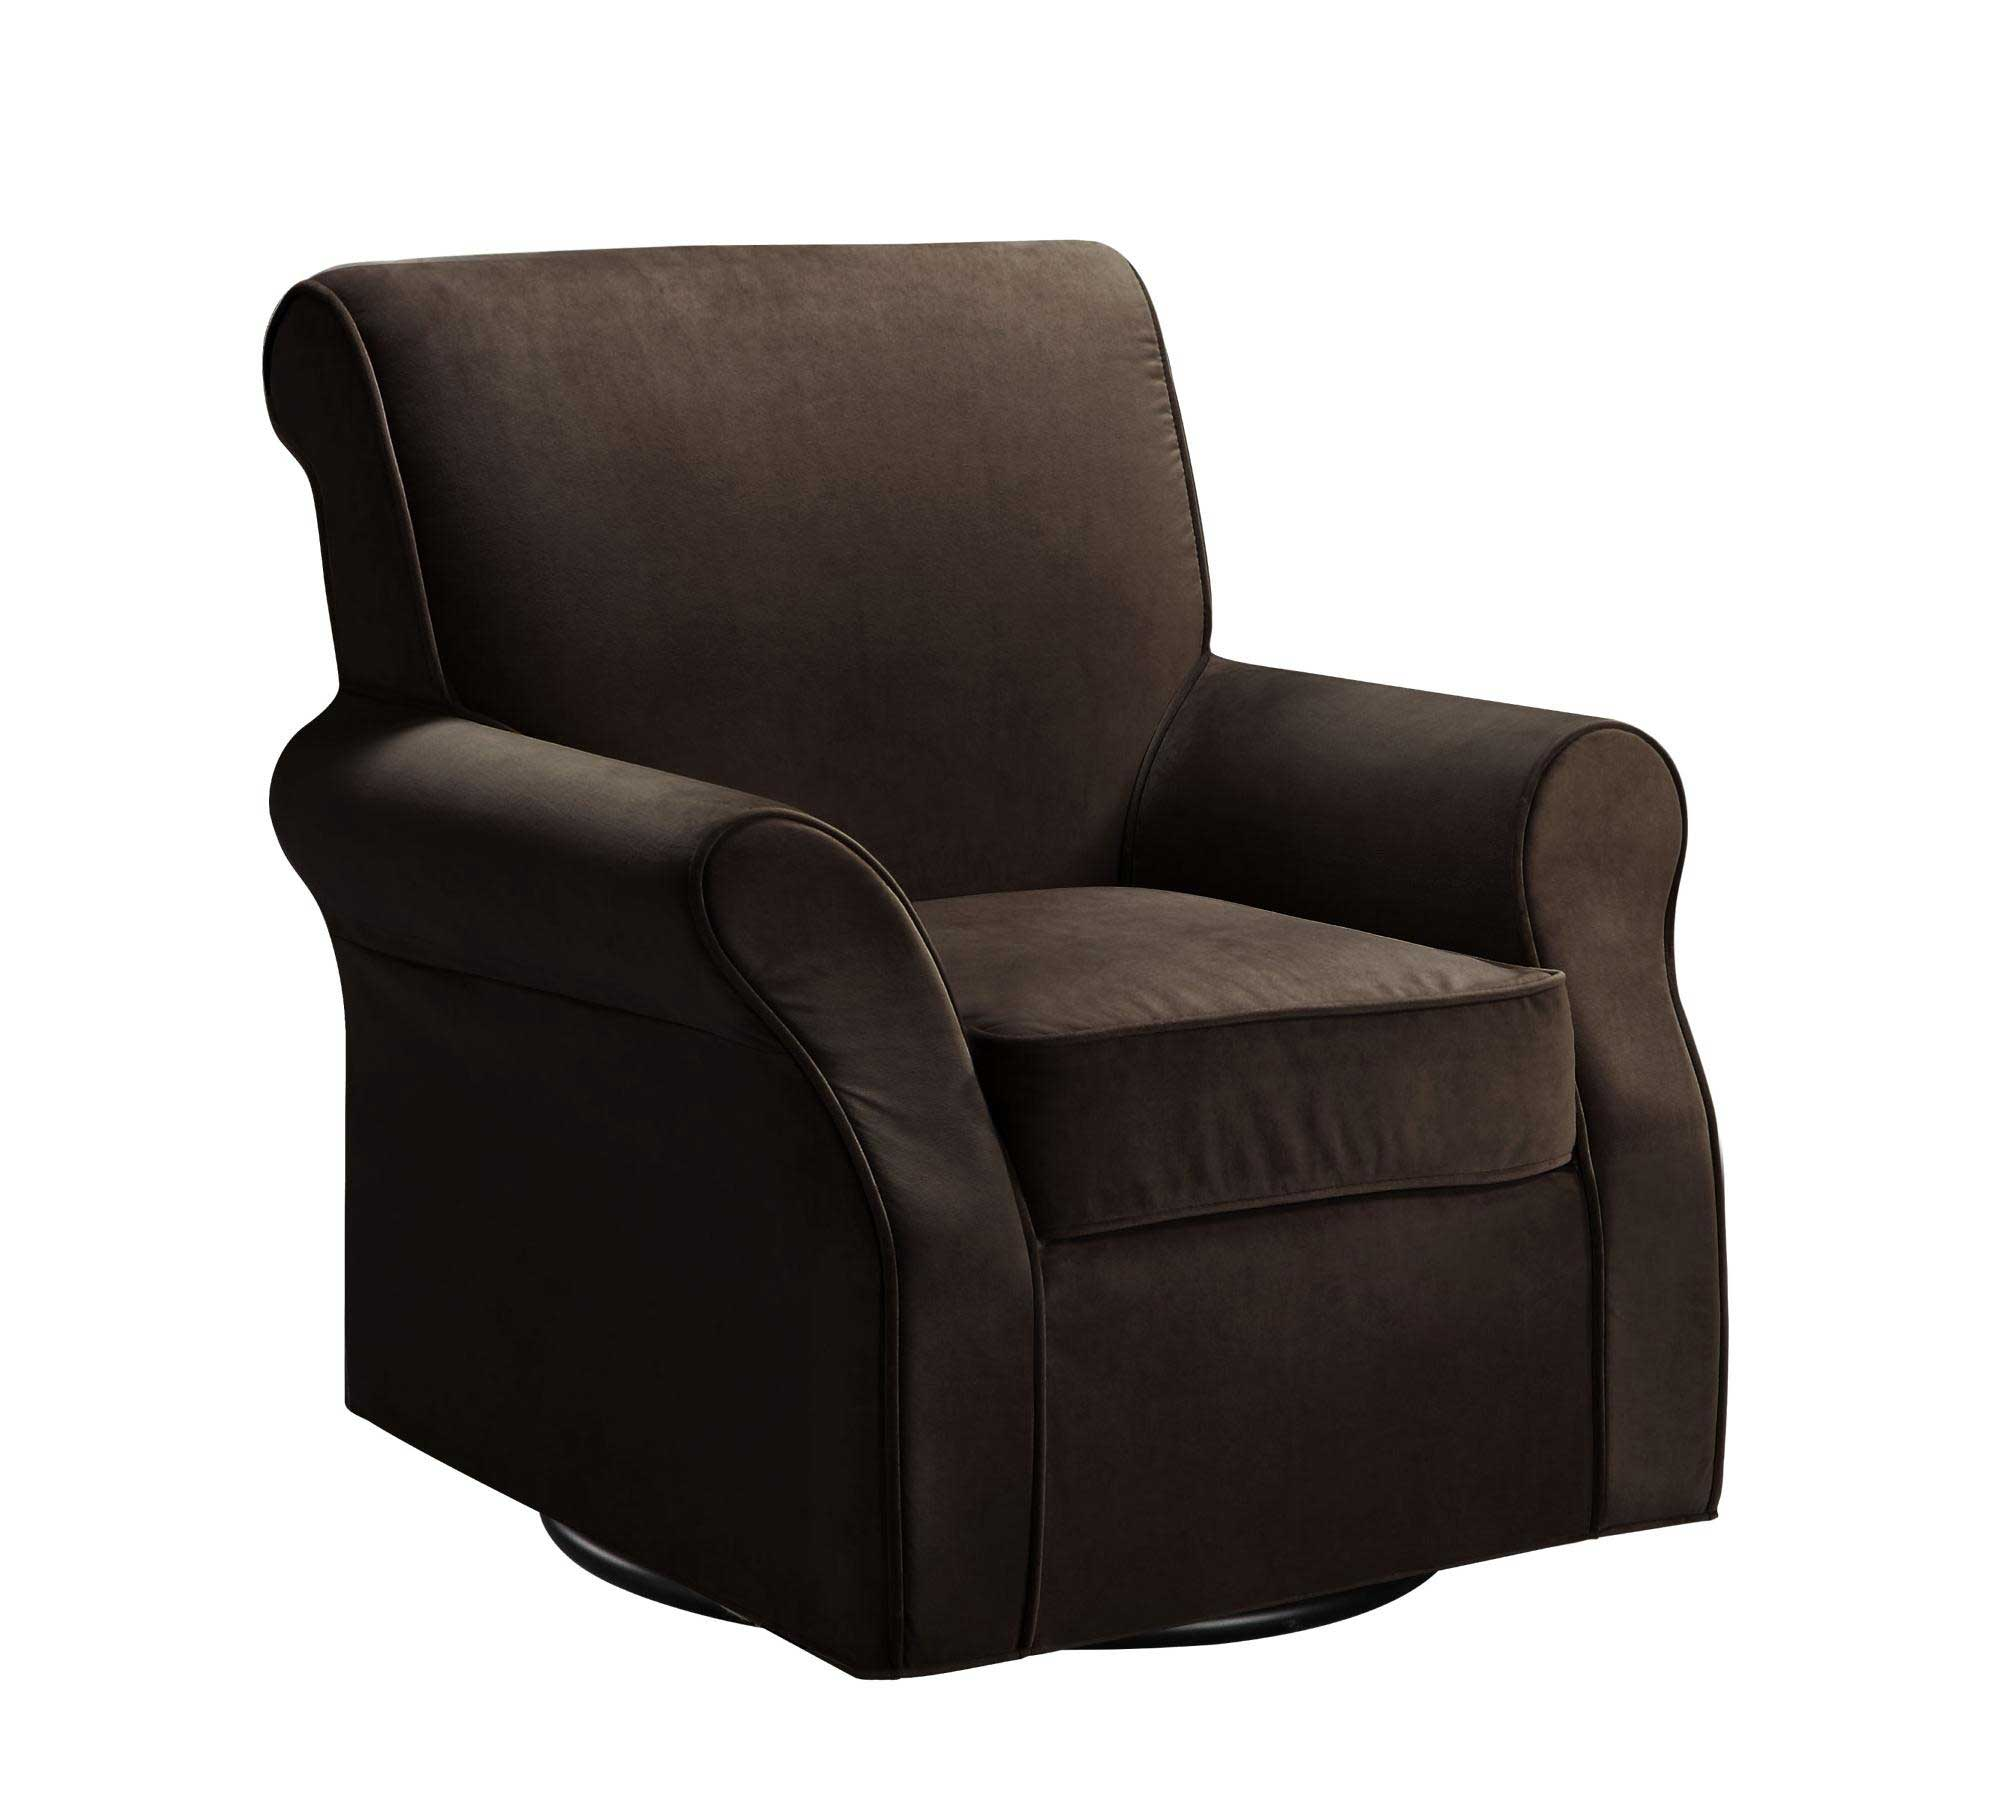 Deep Brown Bergamo Microfiber Ergonomic Swivel Glider